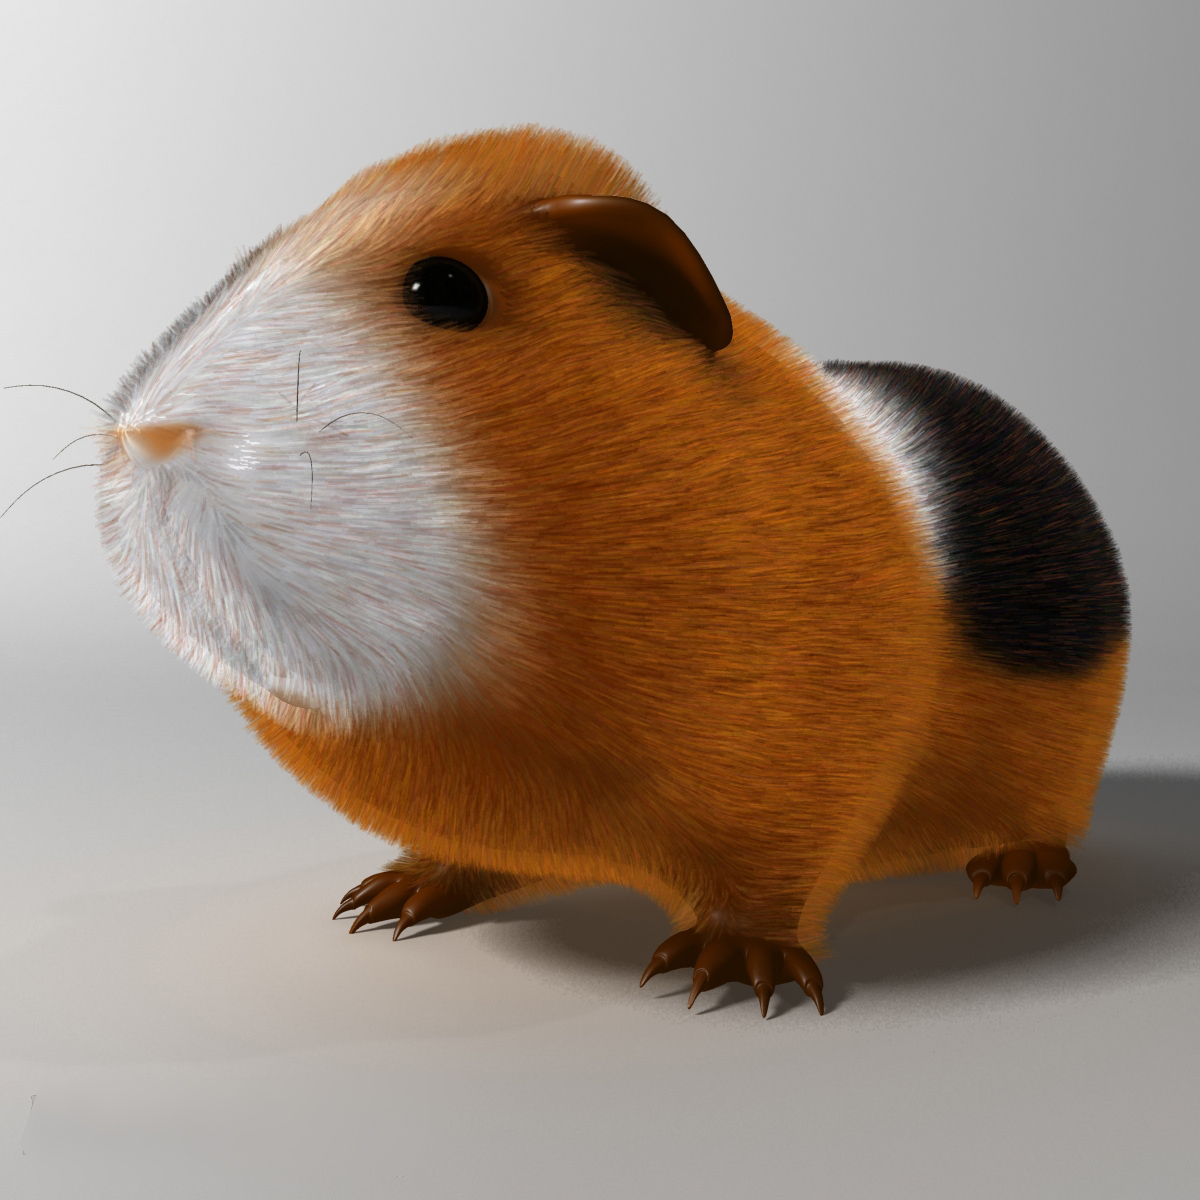 zamorac (cavia porcellus) rigged 3d model 3ds max fbx obj 217060